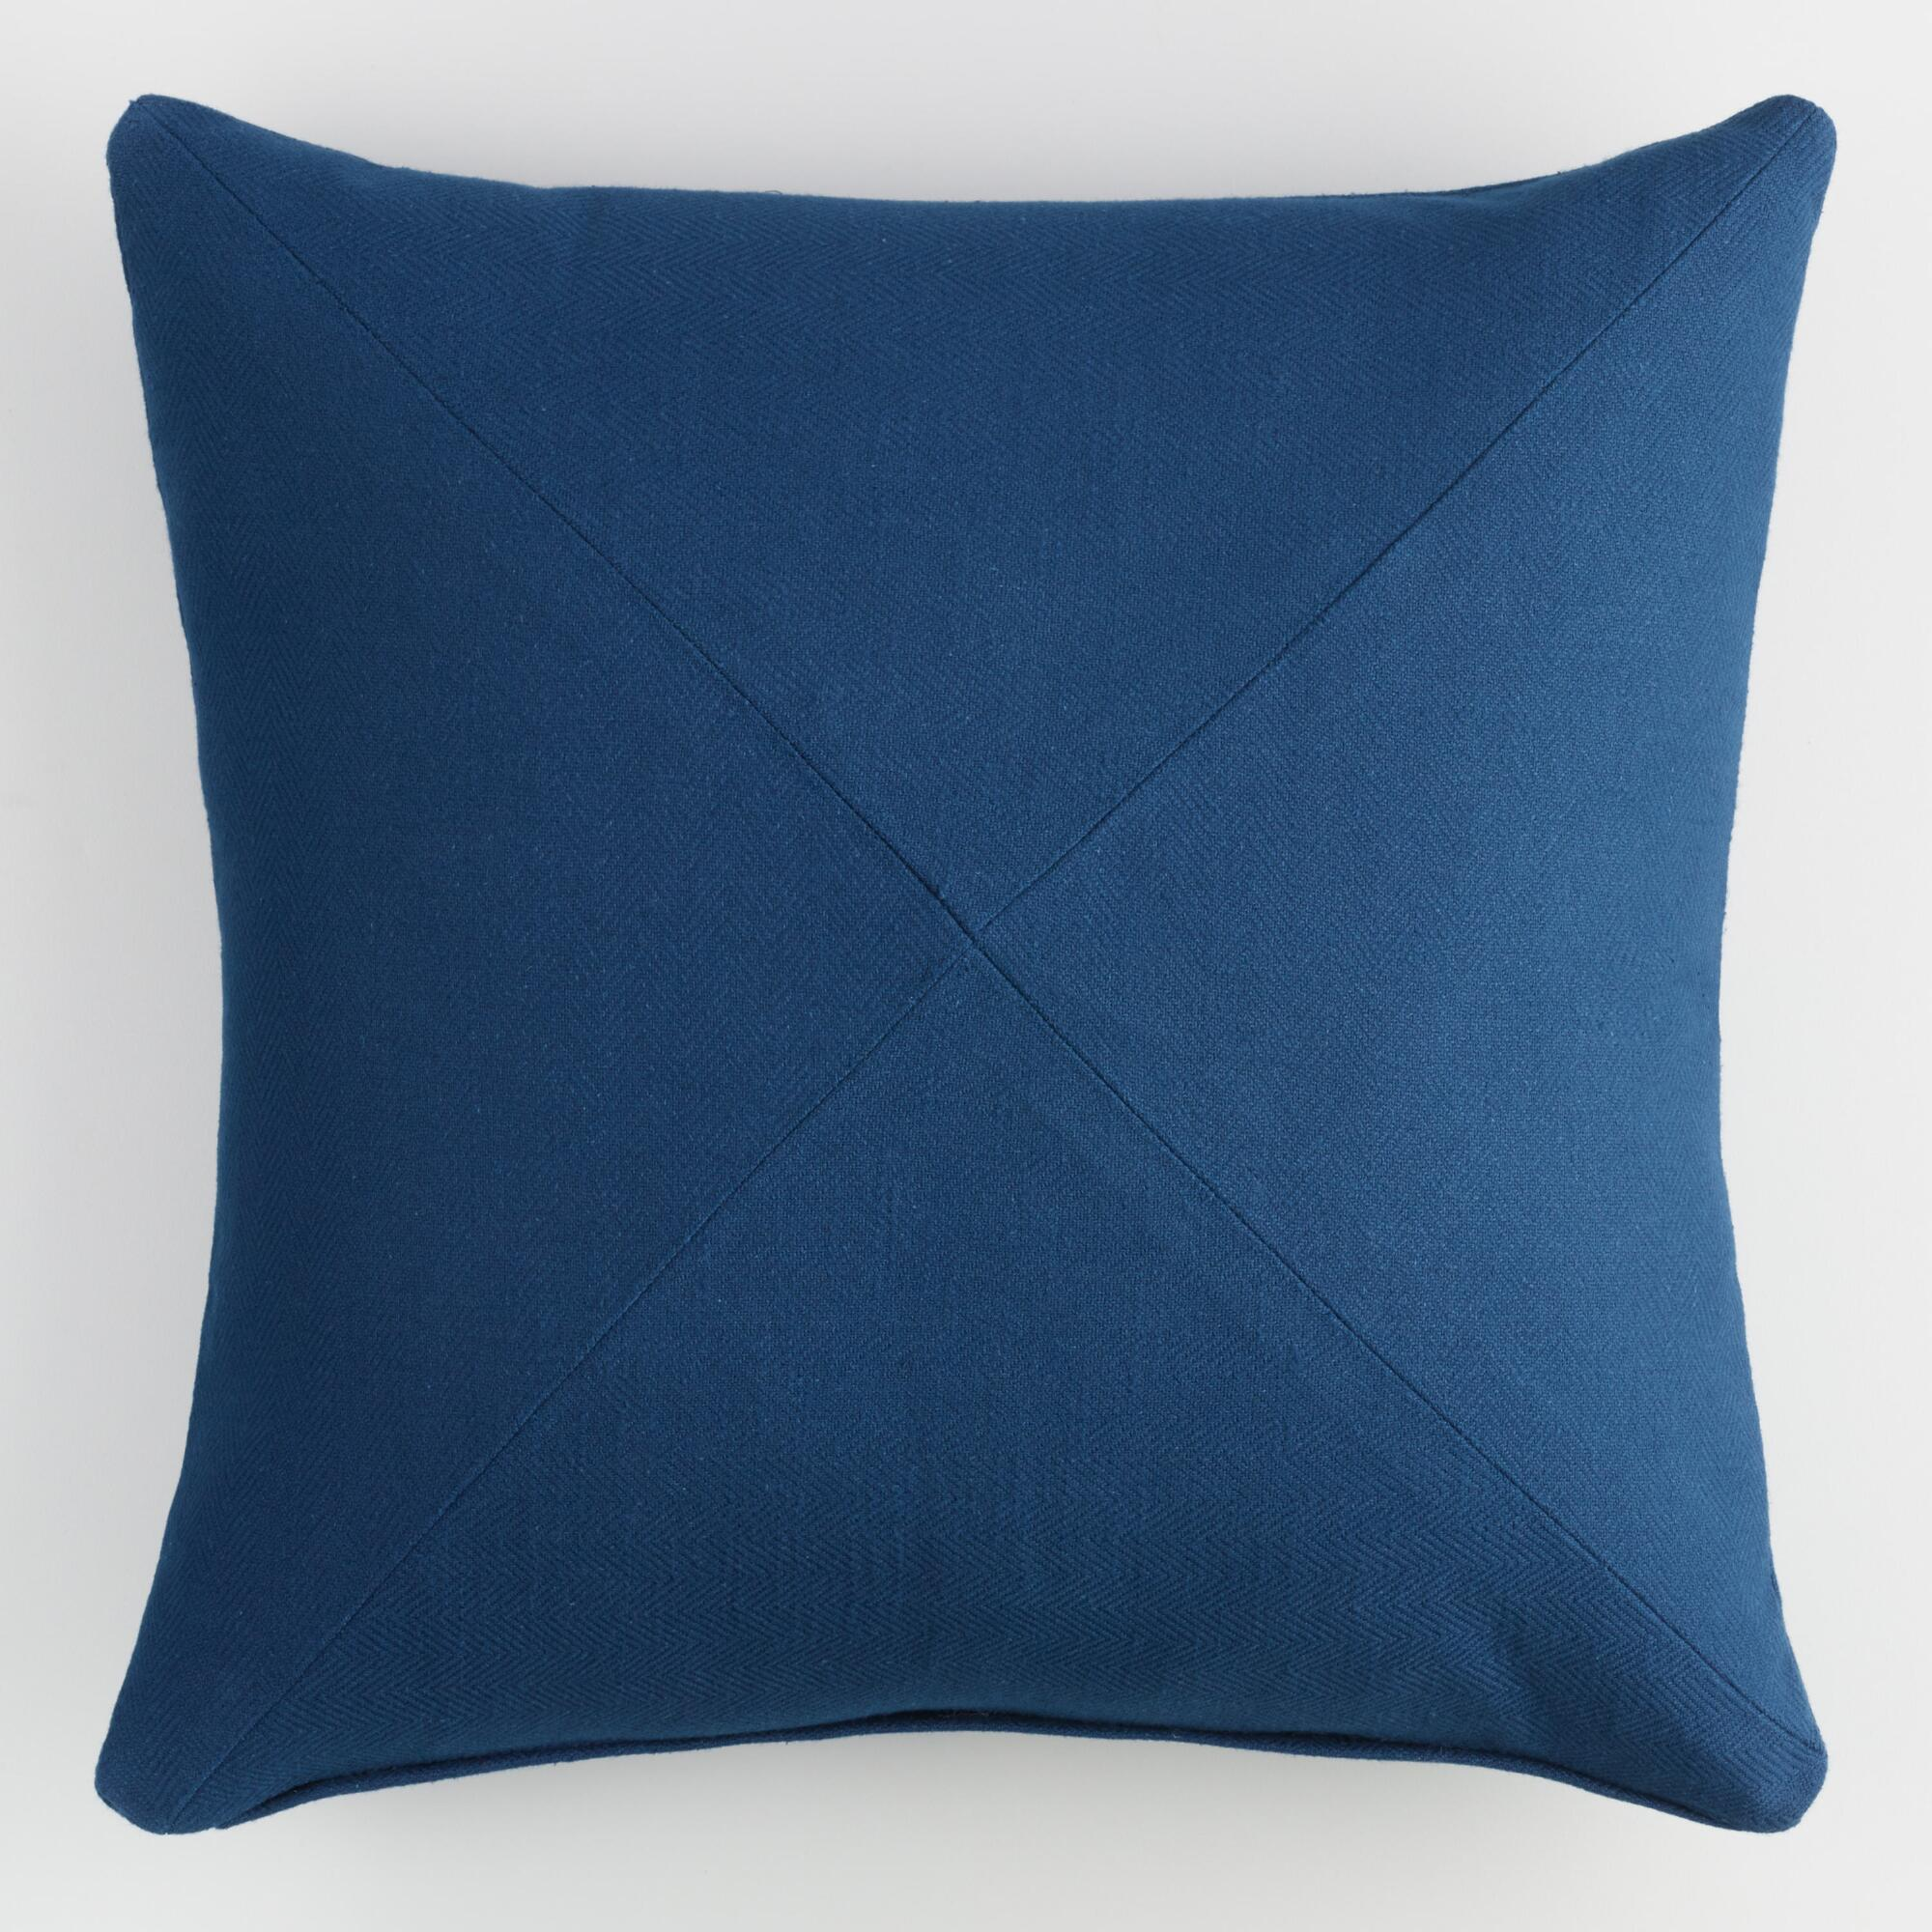 available com p by us pillow in tweeting any liking on airsoft our it july k facebook army shop pillows subscribe combat also j newsletter promo code codes or discount tactical coupon off now purchase gear